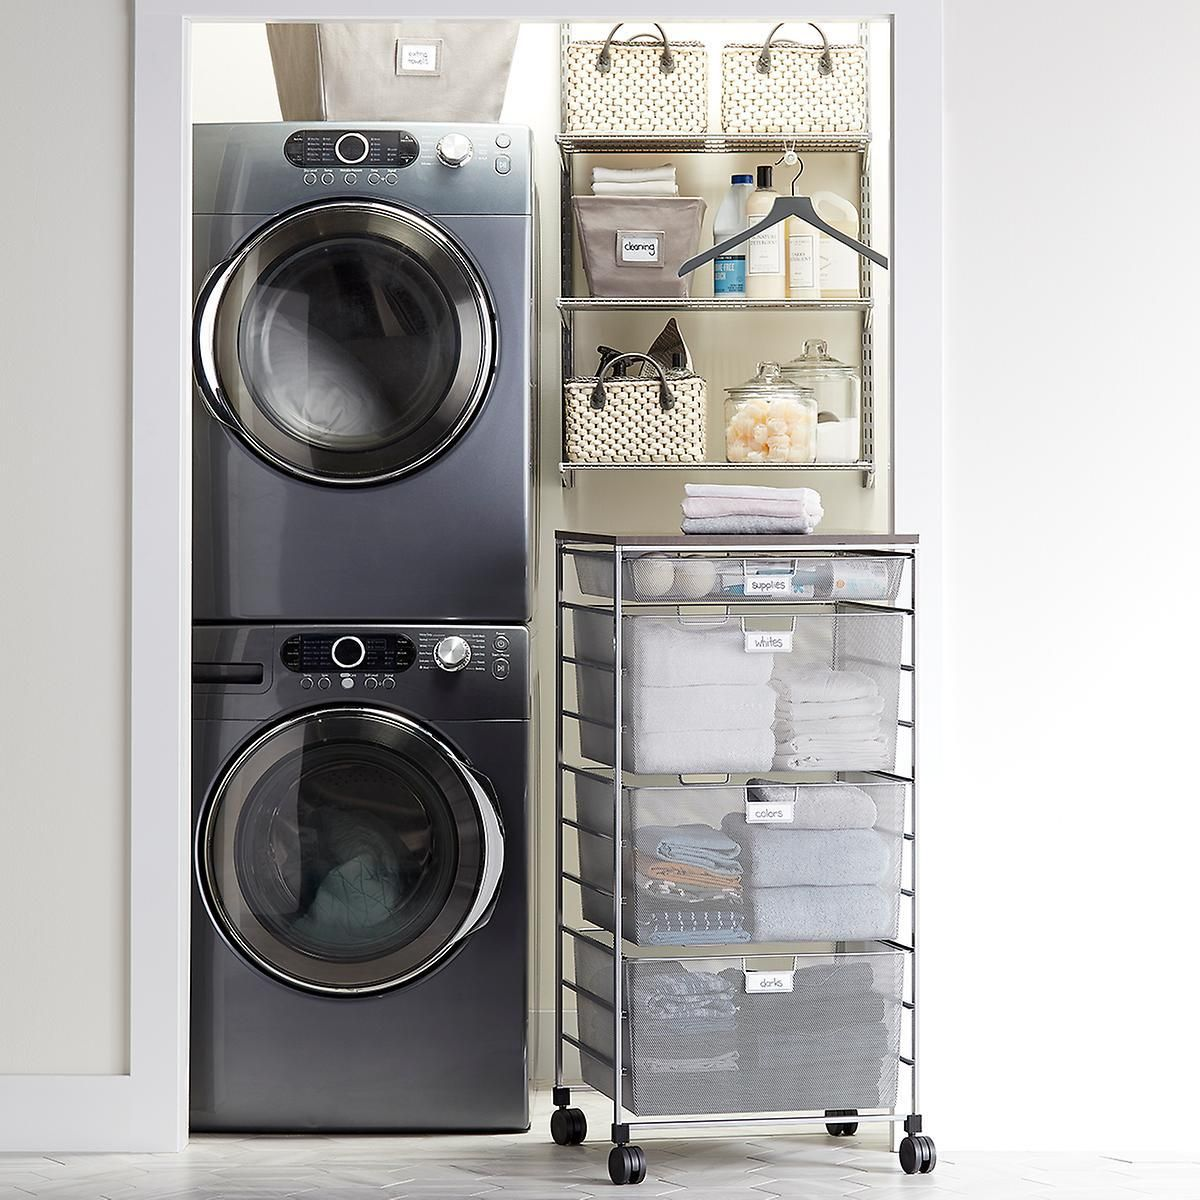 Make The Most Of Tight Quarters In Your Laundry Area Available